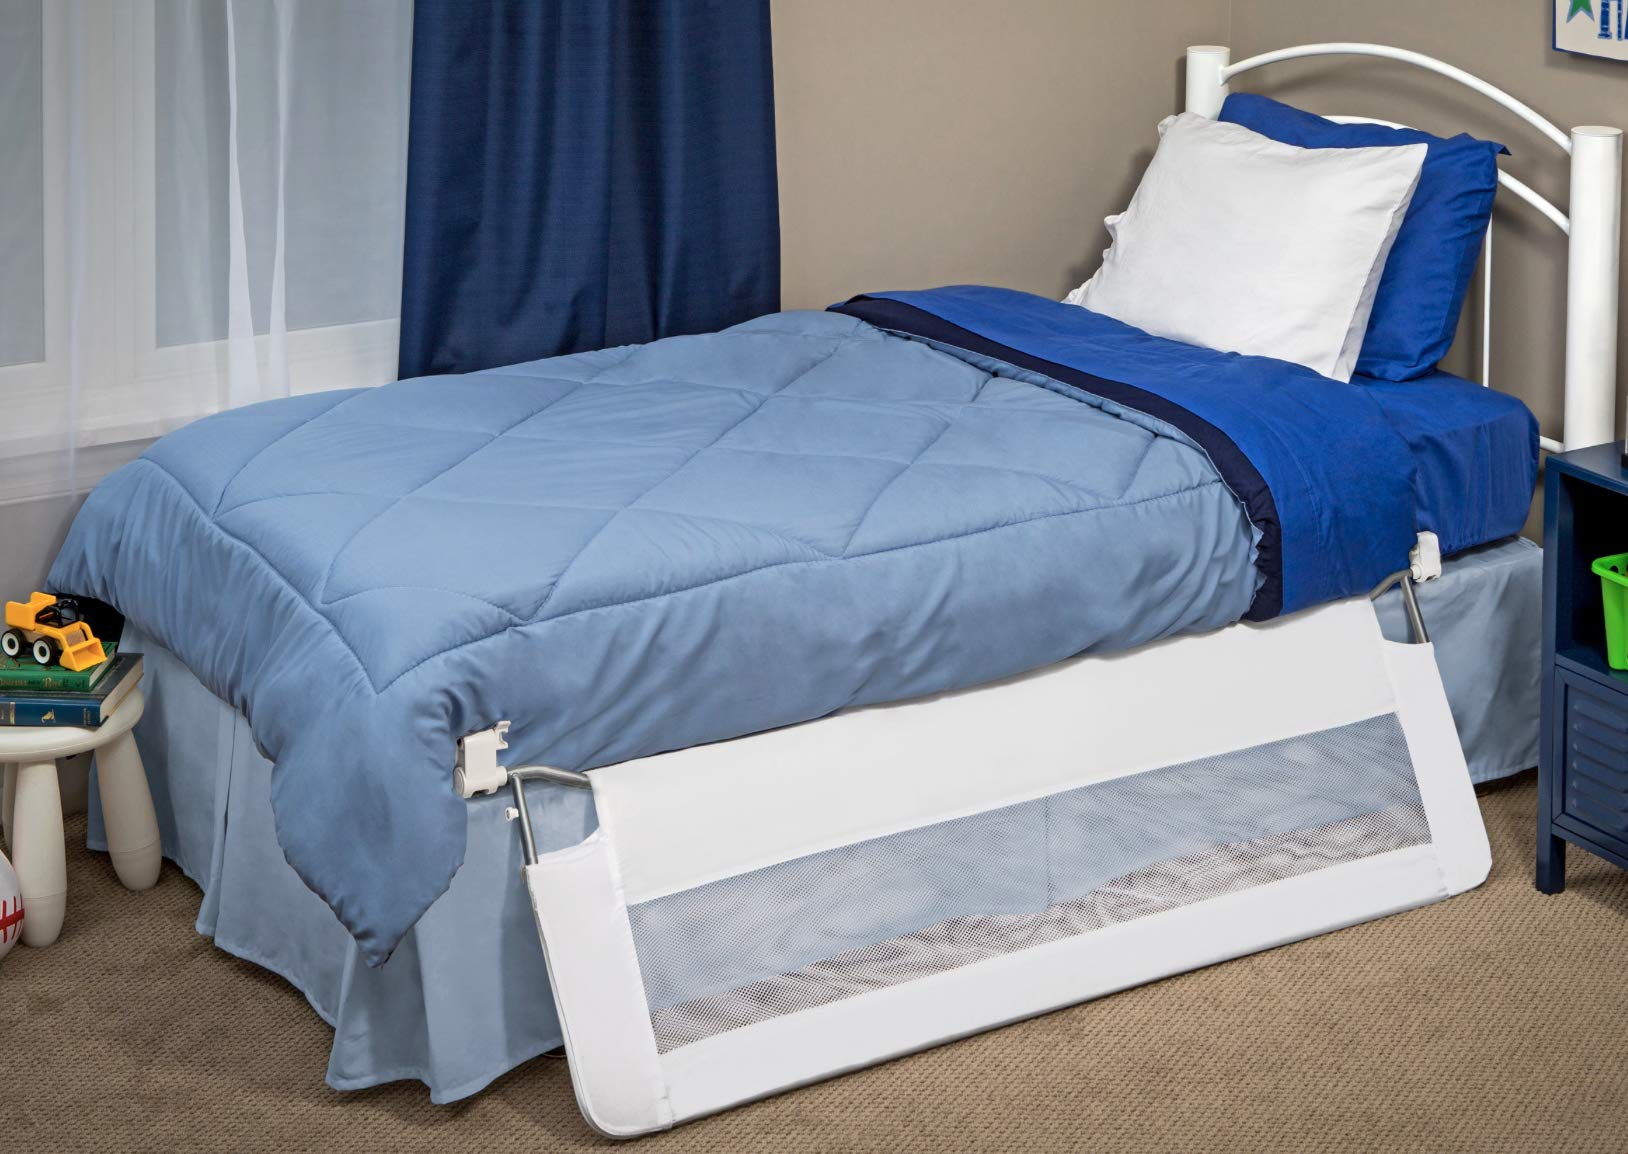 Regalo Swing Down 54-Inch Extra Long Bed Rail Guard Reinforced Anchor Safe New